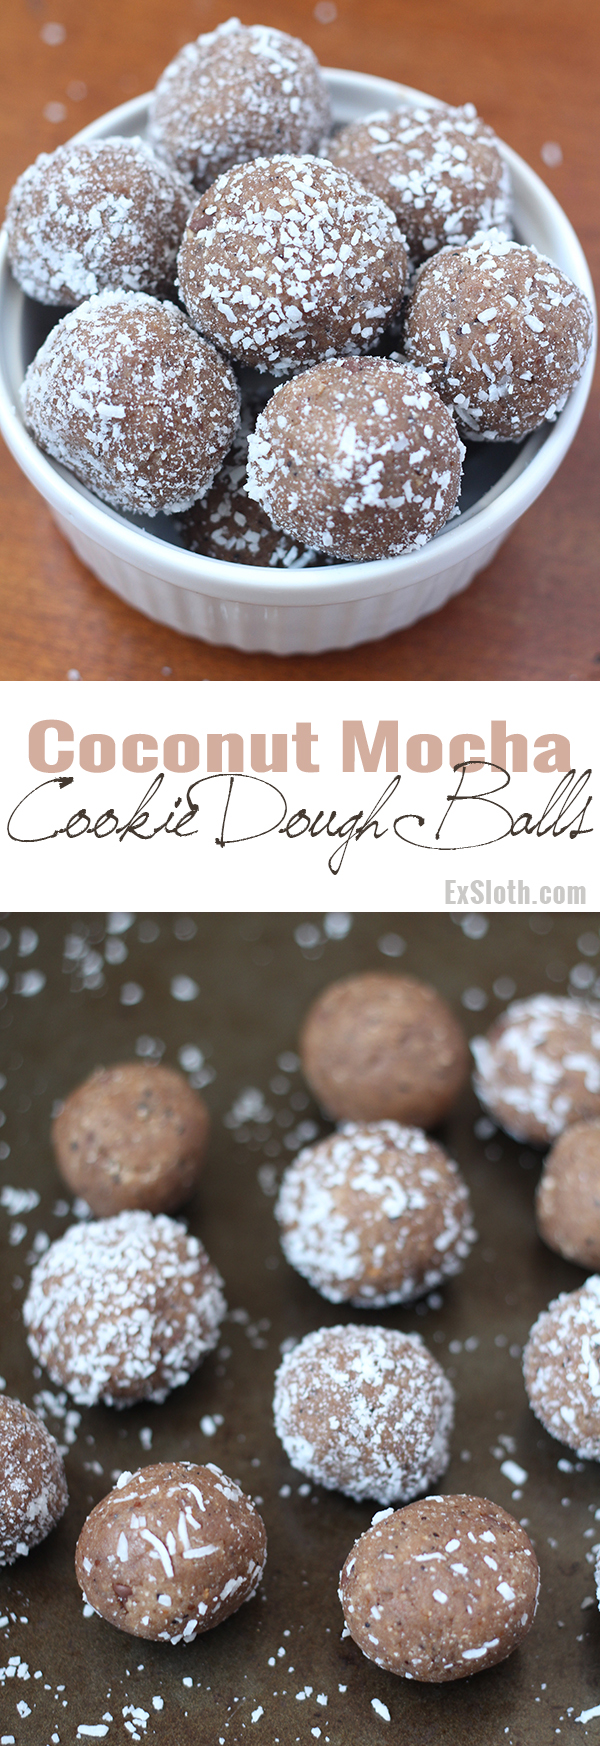 These coconut mocha cookie dough balls are rich sweet, slightly salty and also happen to be vegan and gluten free. The perfect egg-free alternative to regular cookie dough @ExSloth